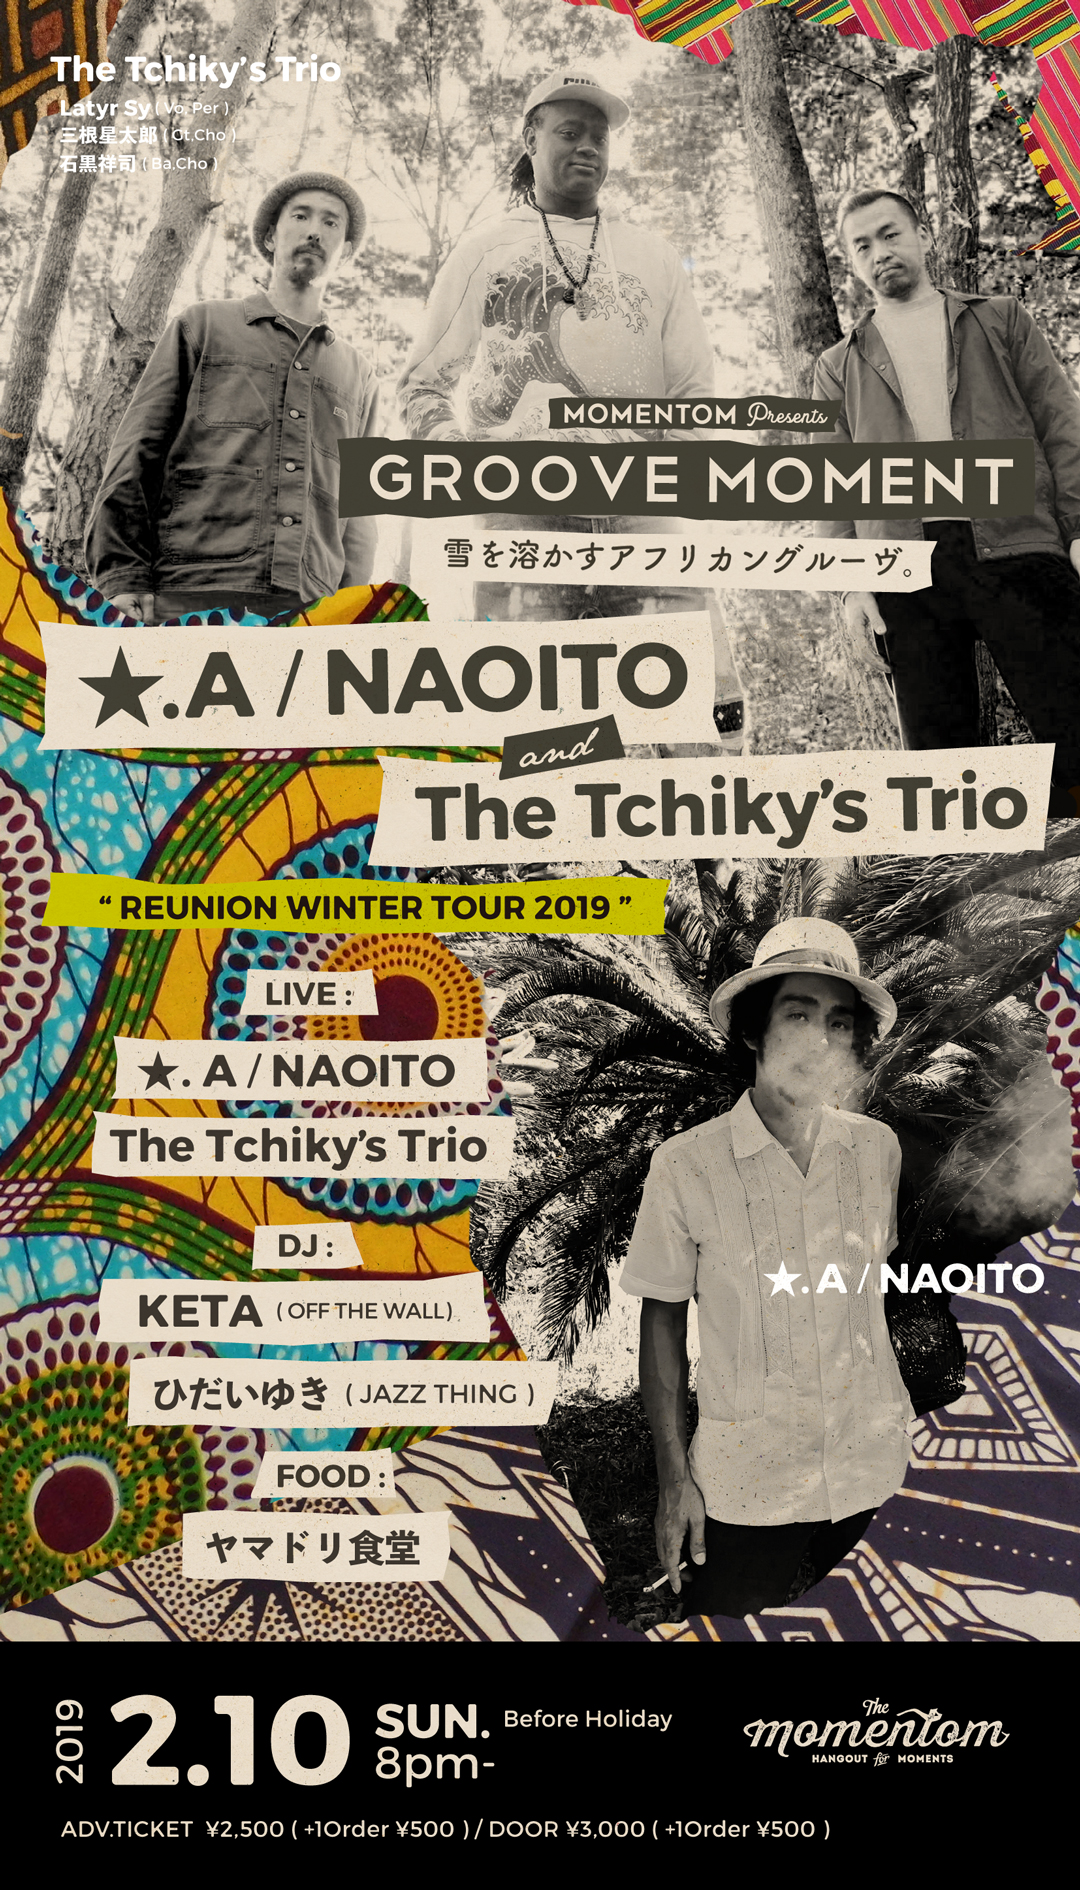 ★.A/NAOITO & The Tchiky's Trio